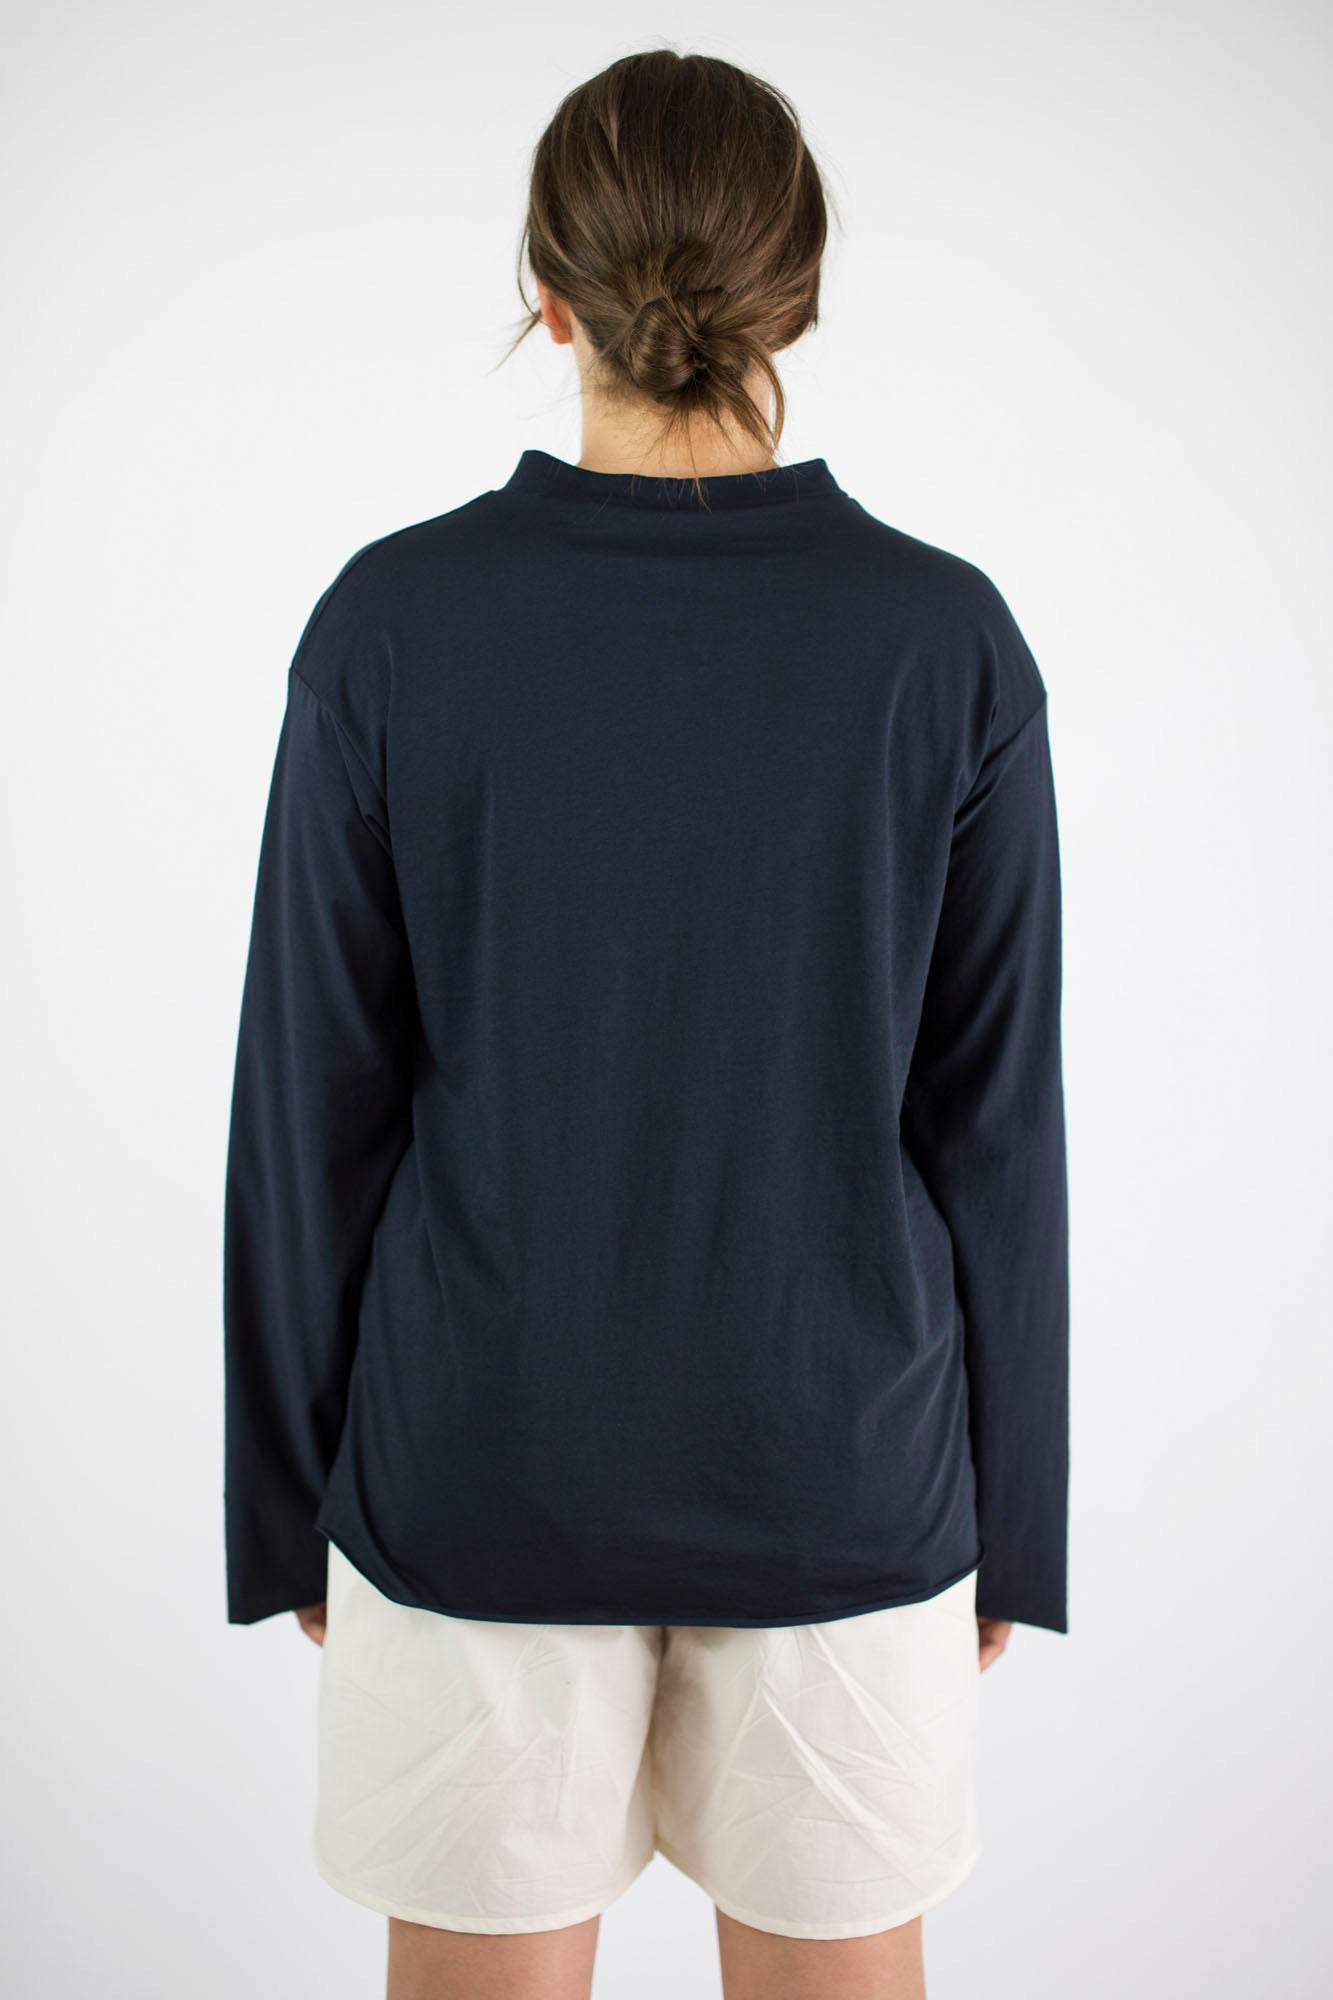 T shirt long sleeve deep ink.